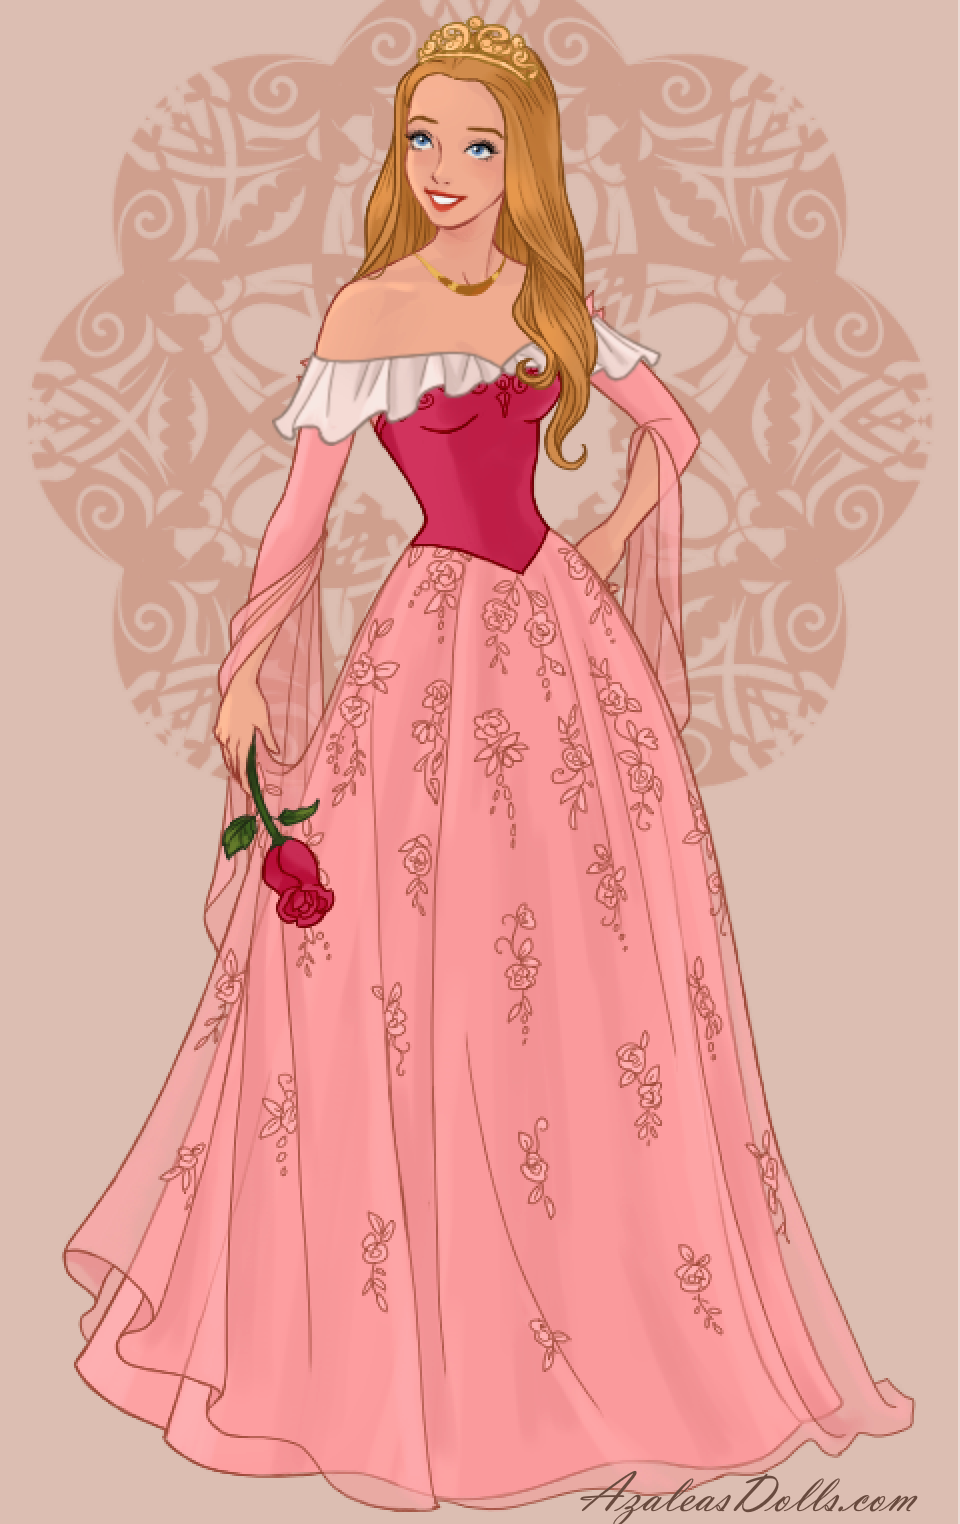 Princess Aurora The Sleeping Beauty In Pink In Wedding Dress Design Dress Up Game Disney Princess Dresses Disney Princess Fashion Sleeping Beauty Costume